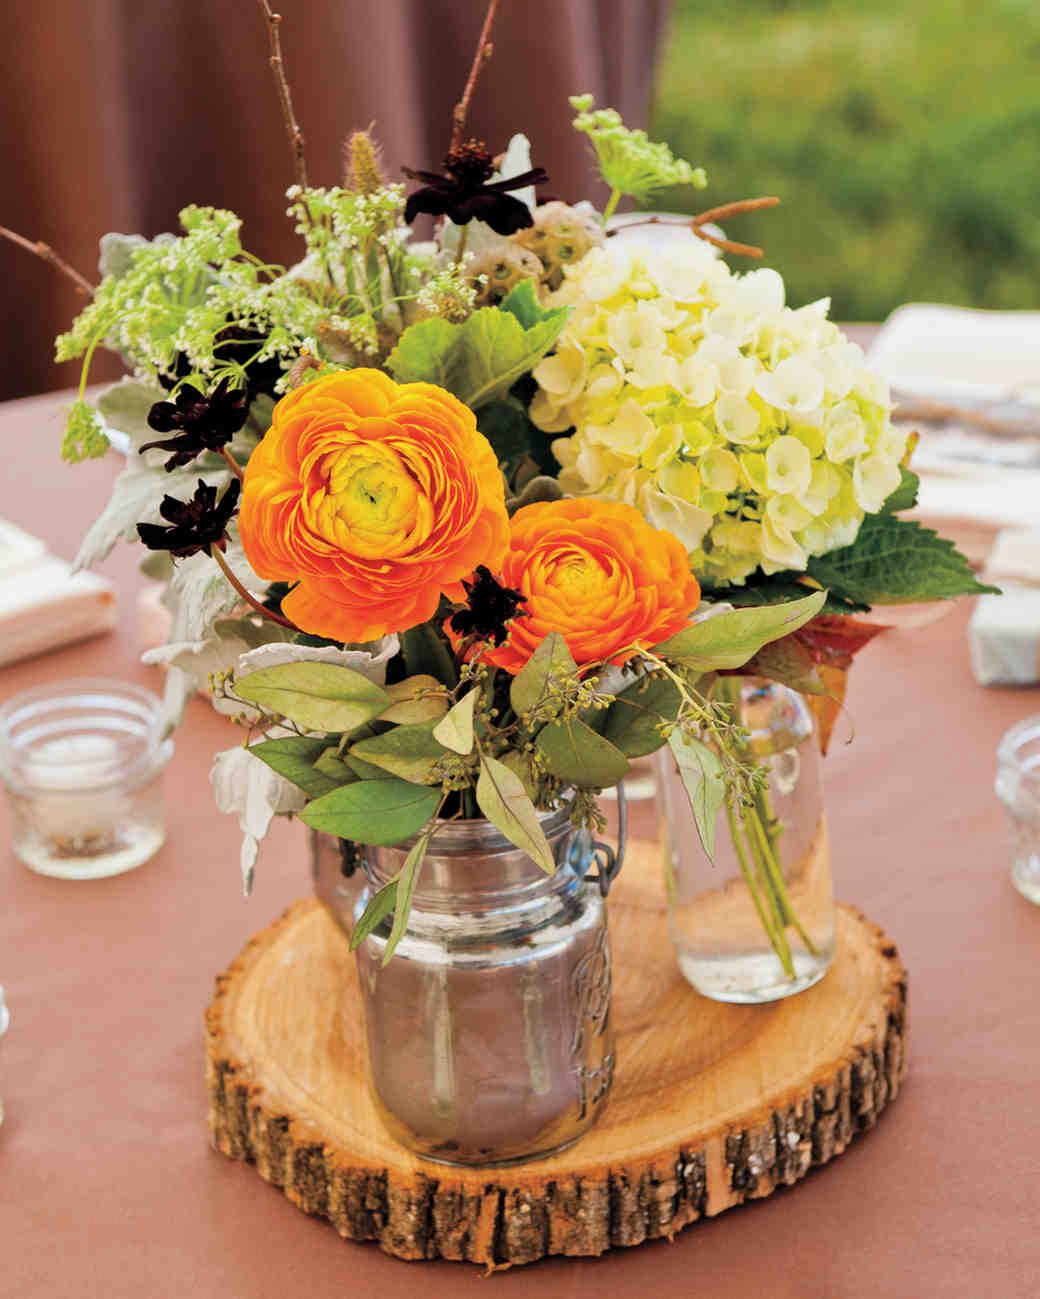 Cheap wedding decoration centerpieces ideas wedding for Wedding dress vase centerpiece